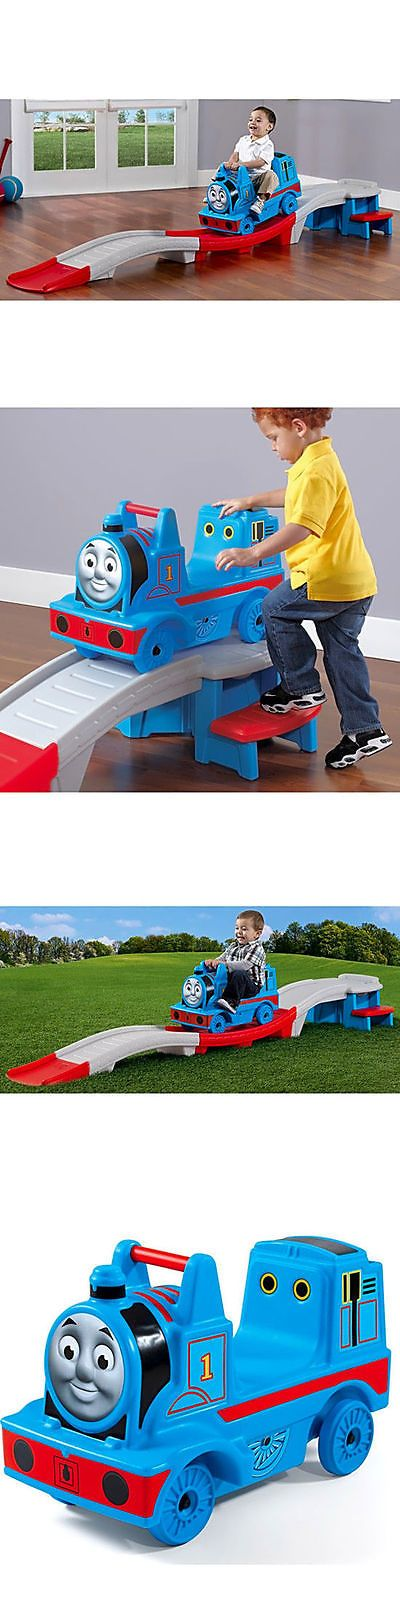 Trains and Vehicles 113518: Kids Roller Coaster Ride On Thomas The Train Toy Children Toddler Boy Toy Track -> BUY IT NOW ONLY: $109.89 on eBay!